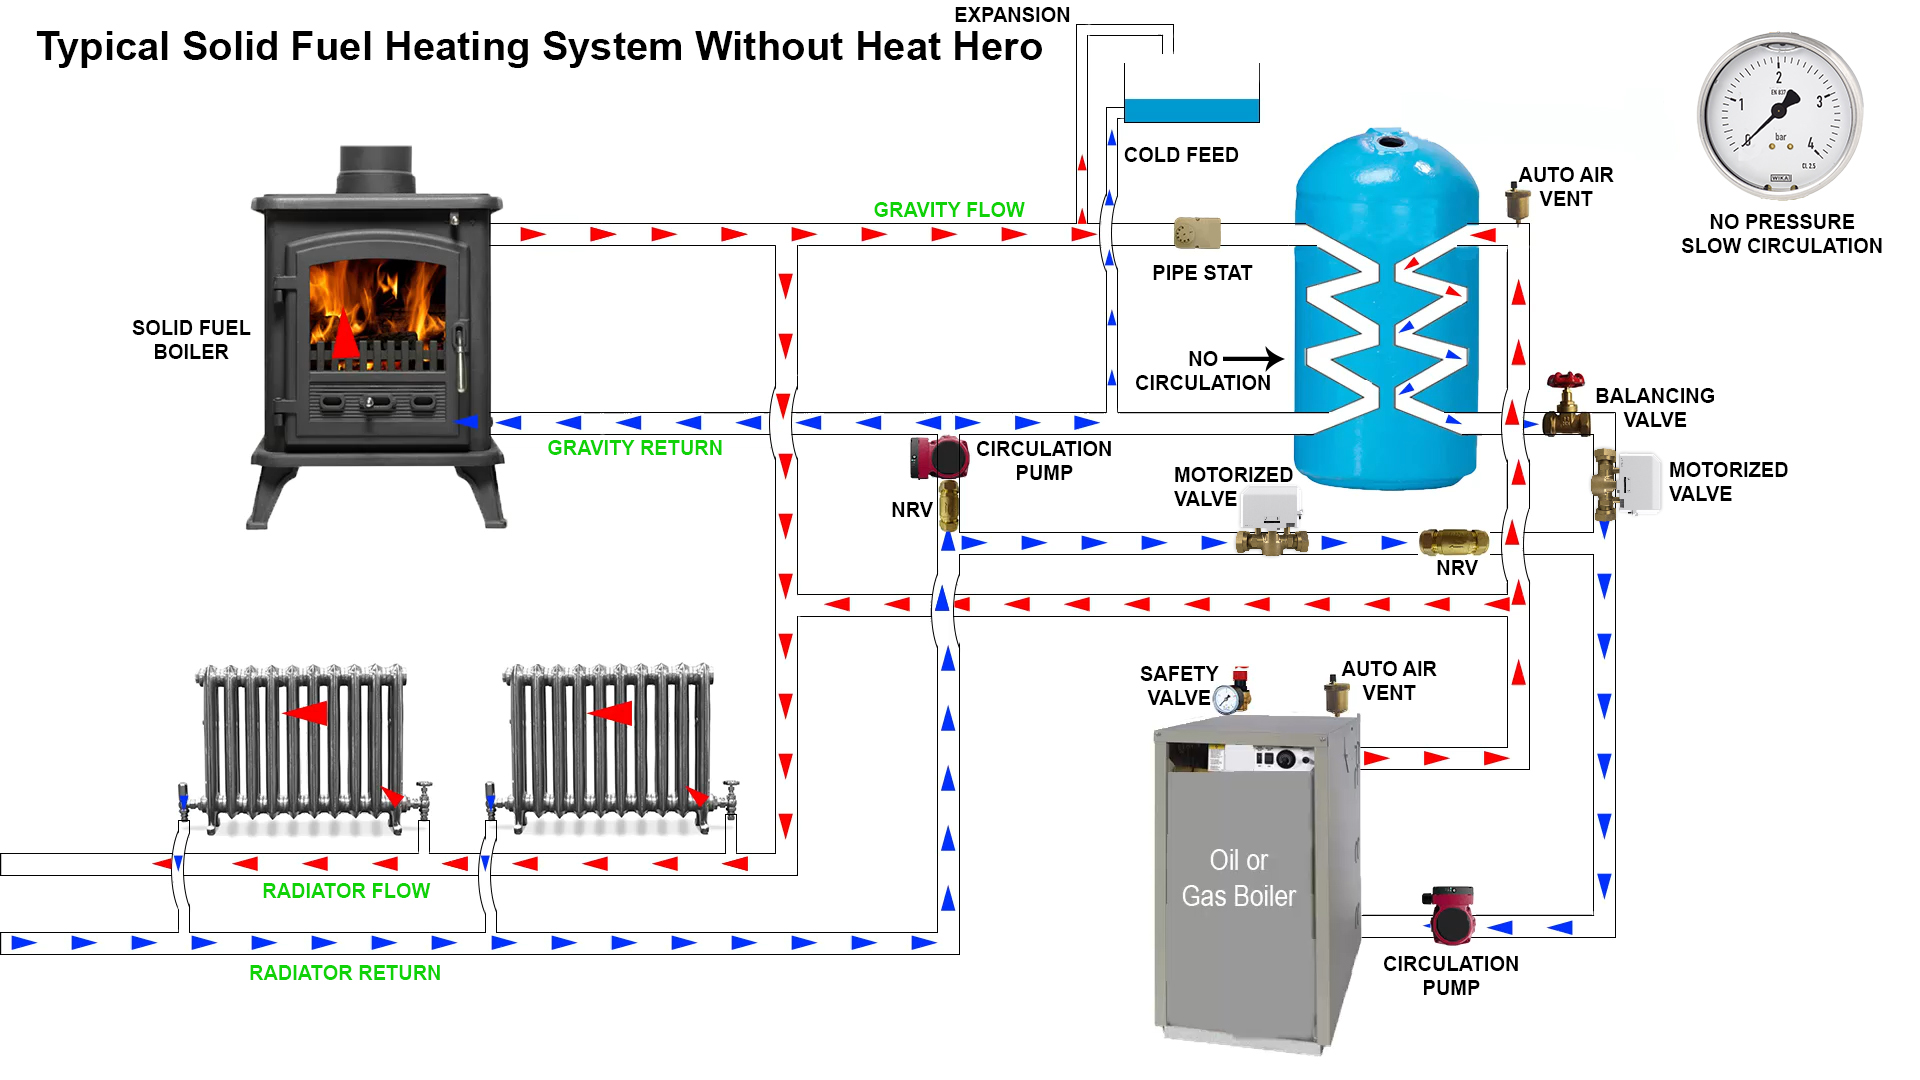 central heating wiring diagram gravity hot water 0 3 and ammeter slow circulation no pressure not efficient heathero ie